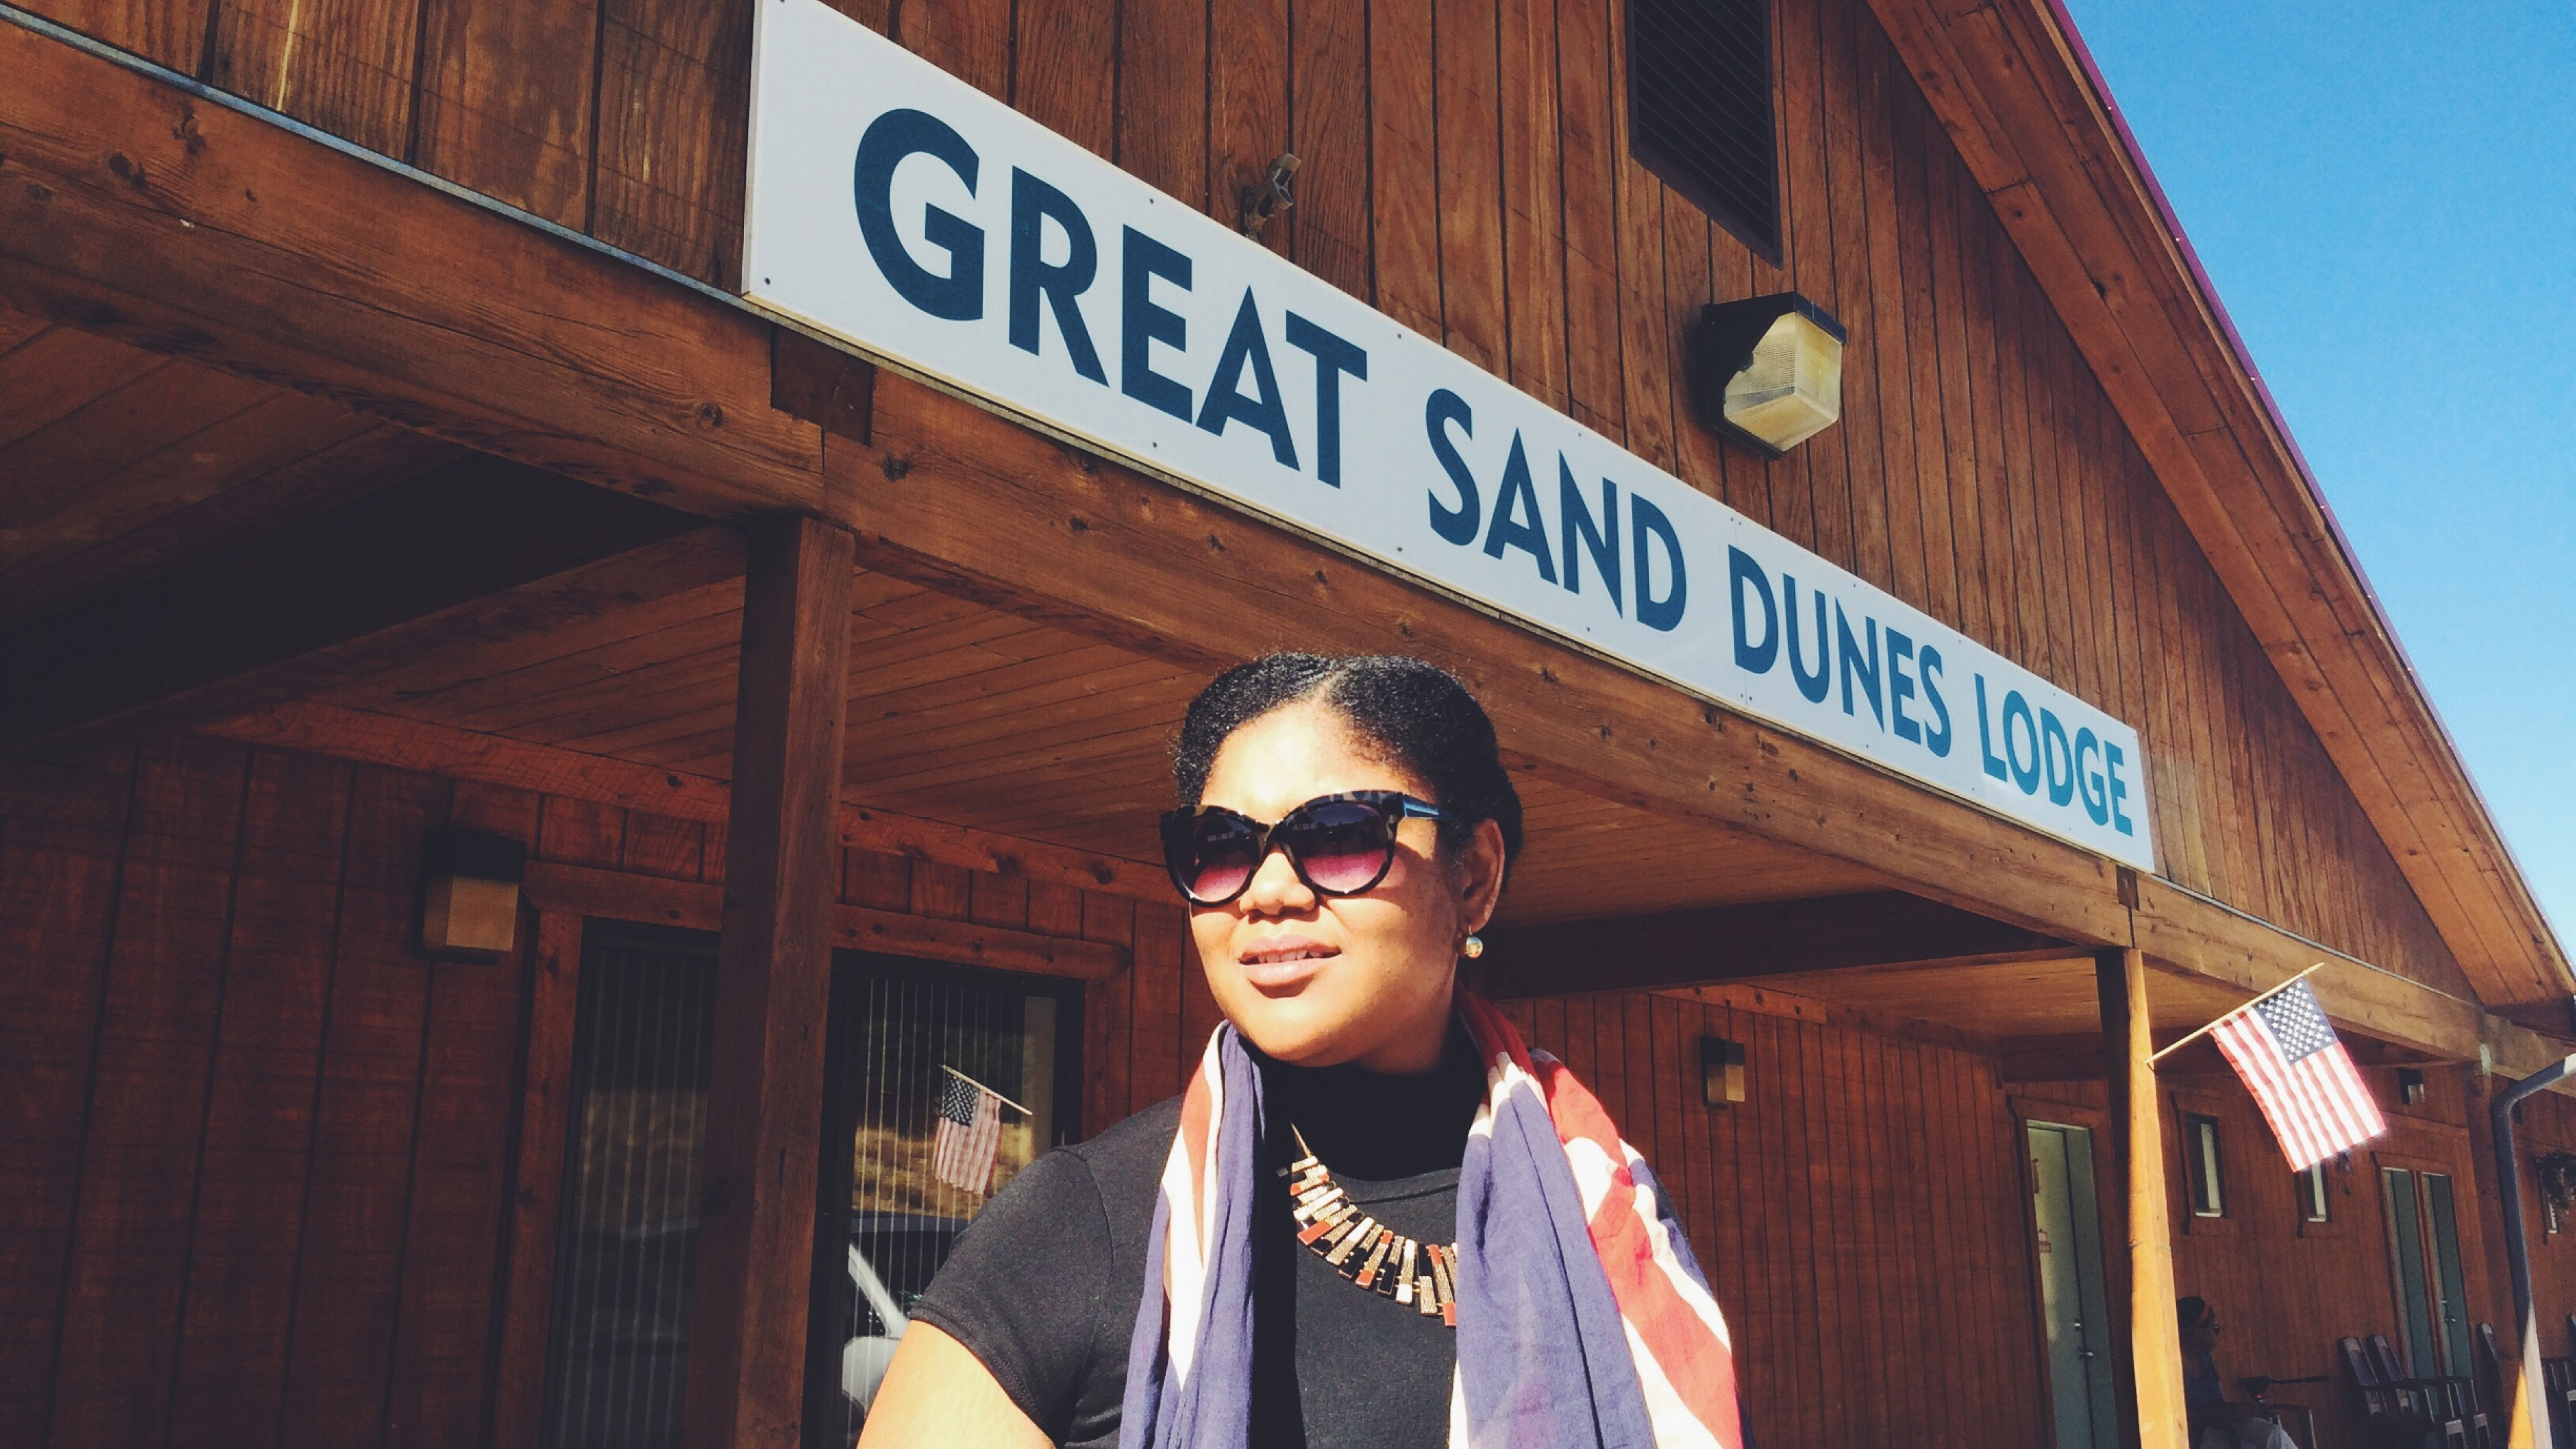 Mellie Davis smiling with Great Sand Dunes sign behind